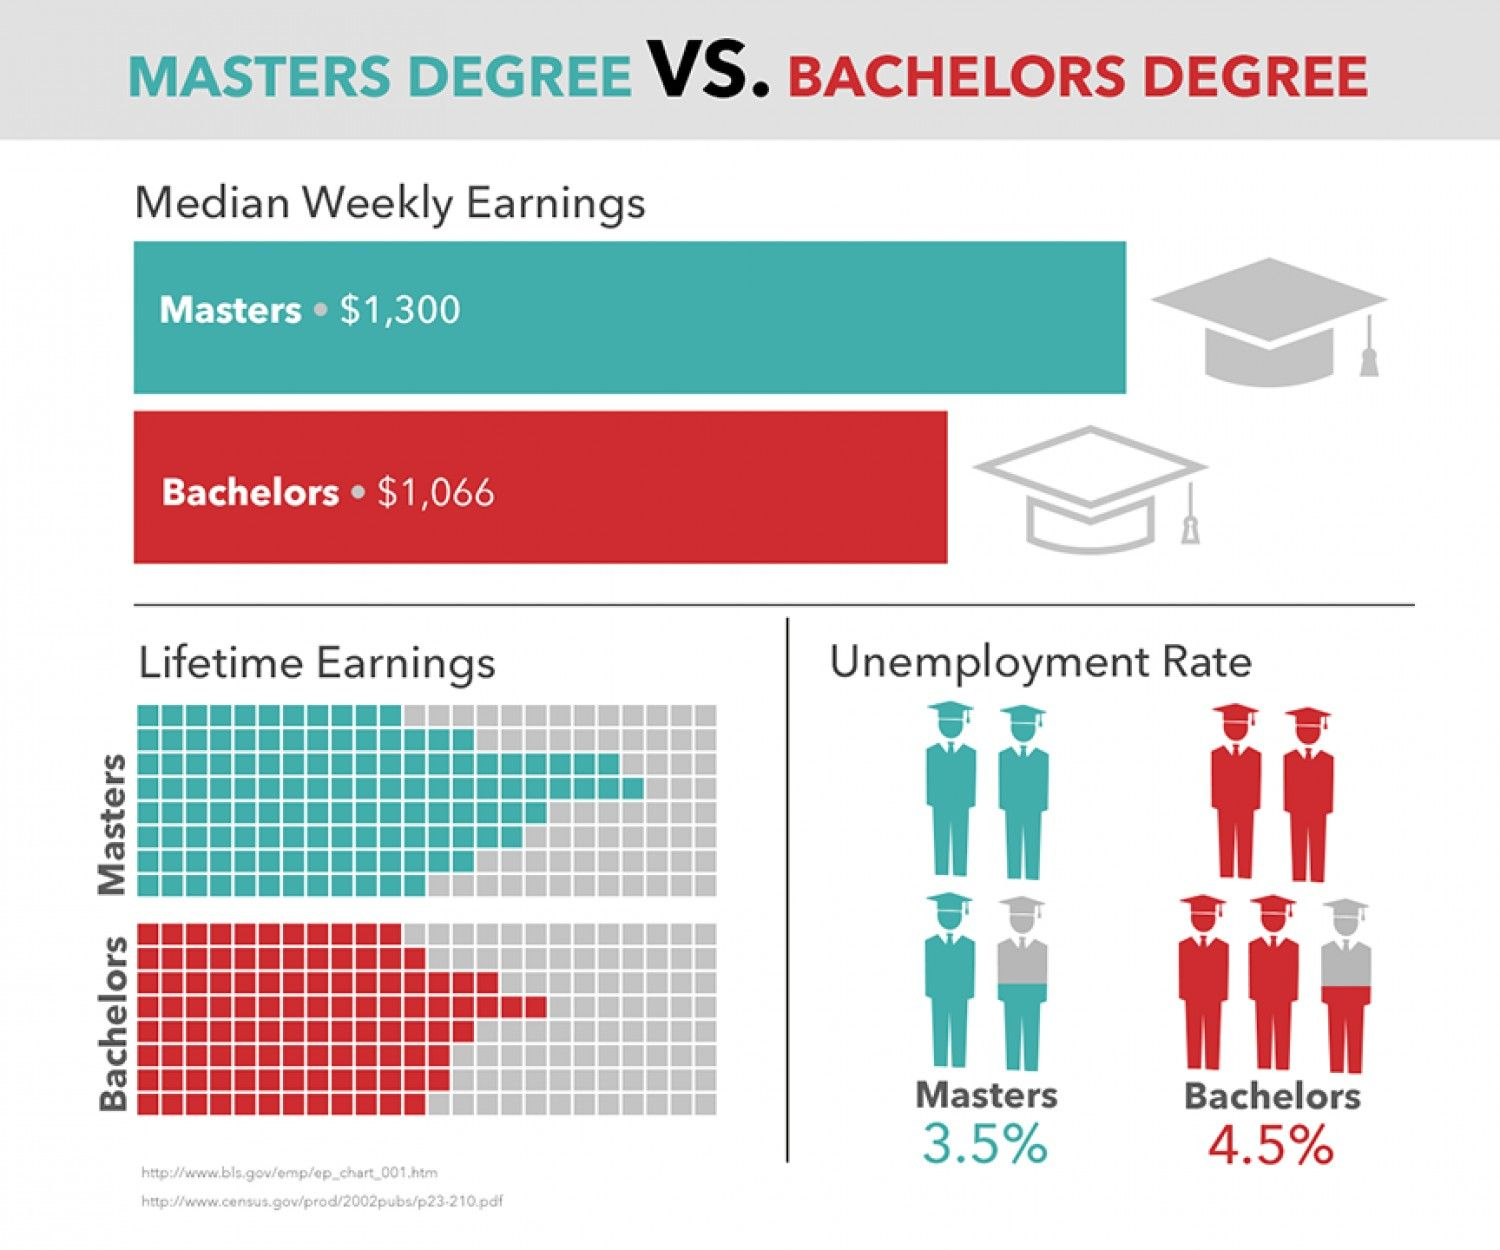 Masters Degree Vs Bachelors Degree Visual Ly Masters Degree Bachelors Degree Master